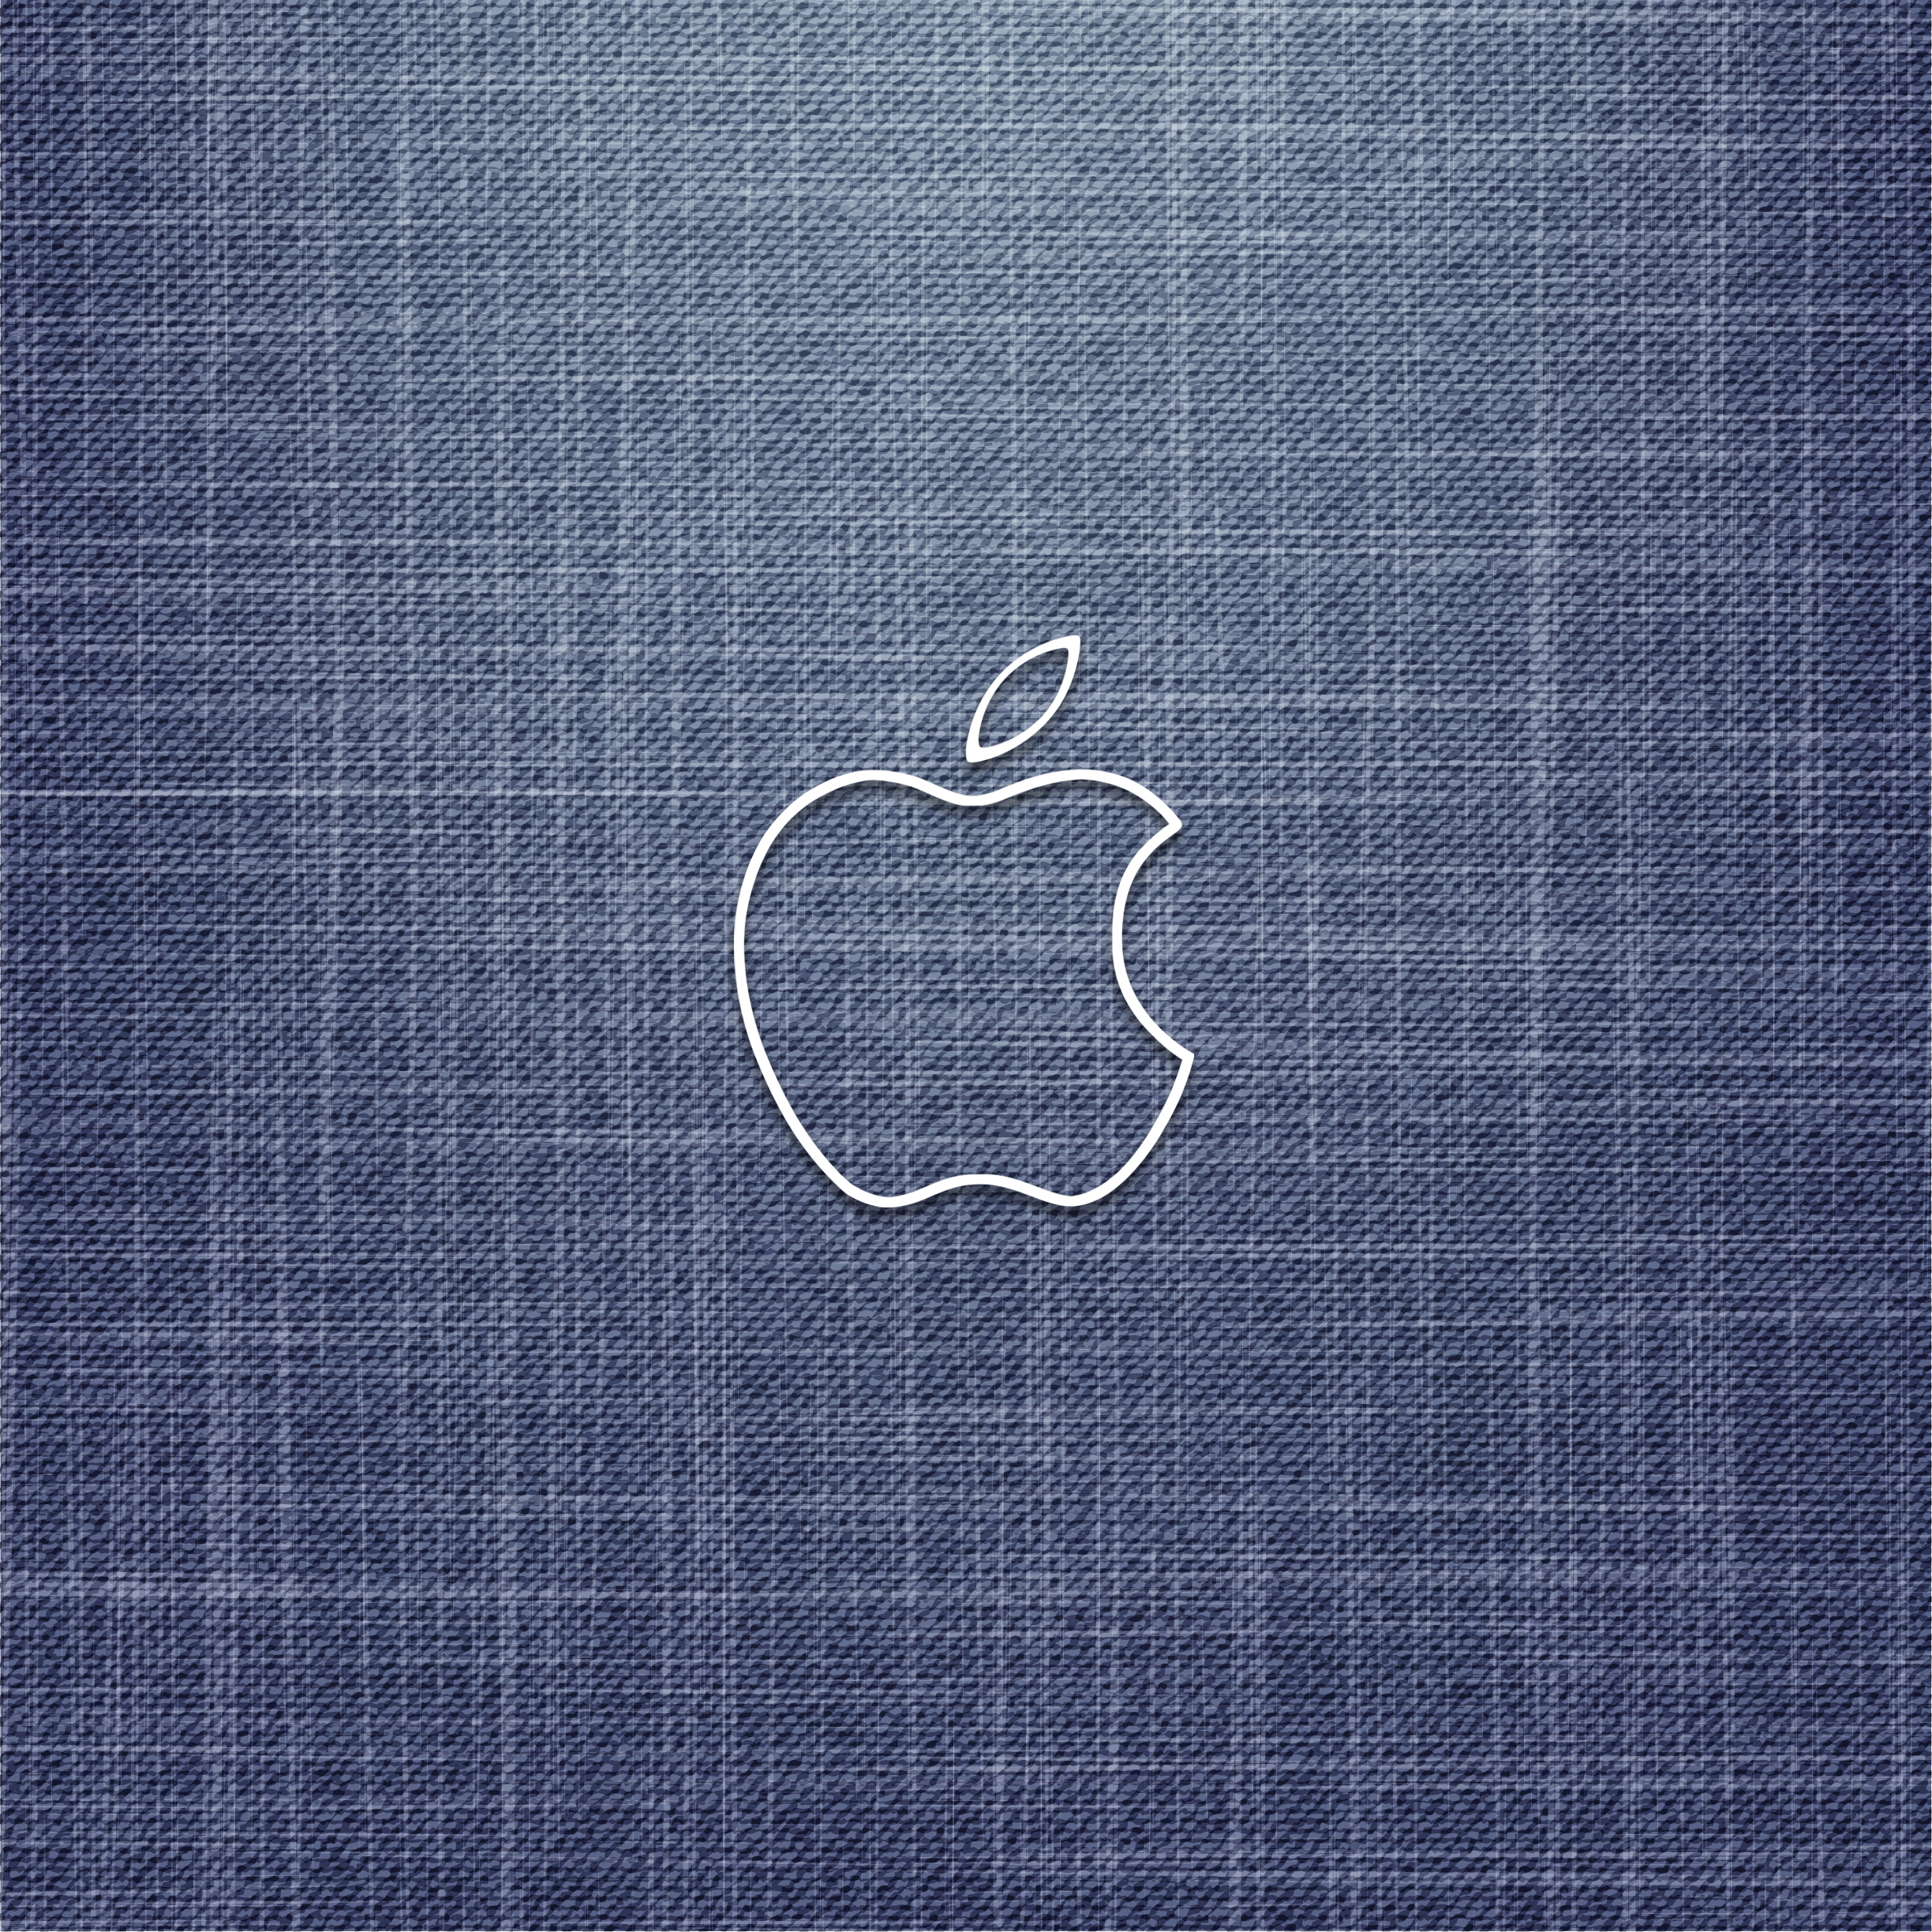 iPhone iPad MacBook Air MacBook Pro iMac Apple Logo Wallpaper デニム